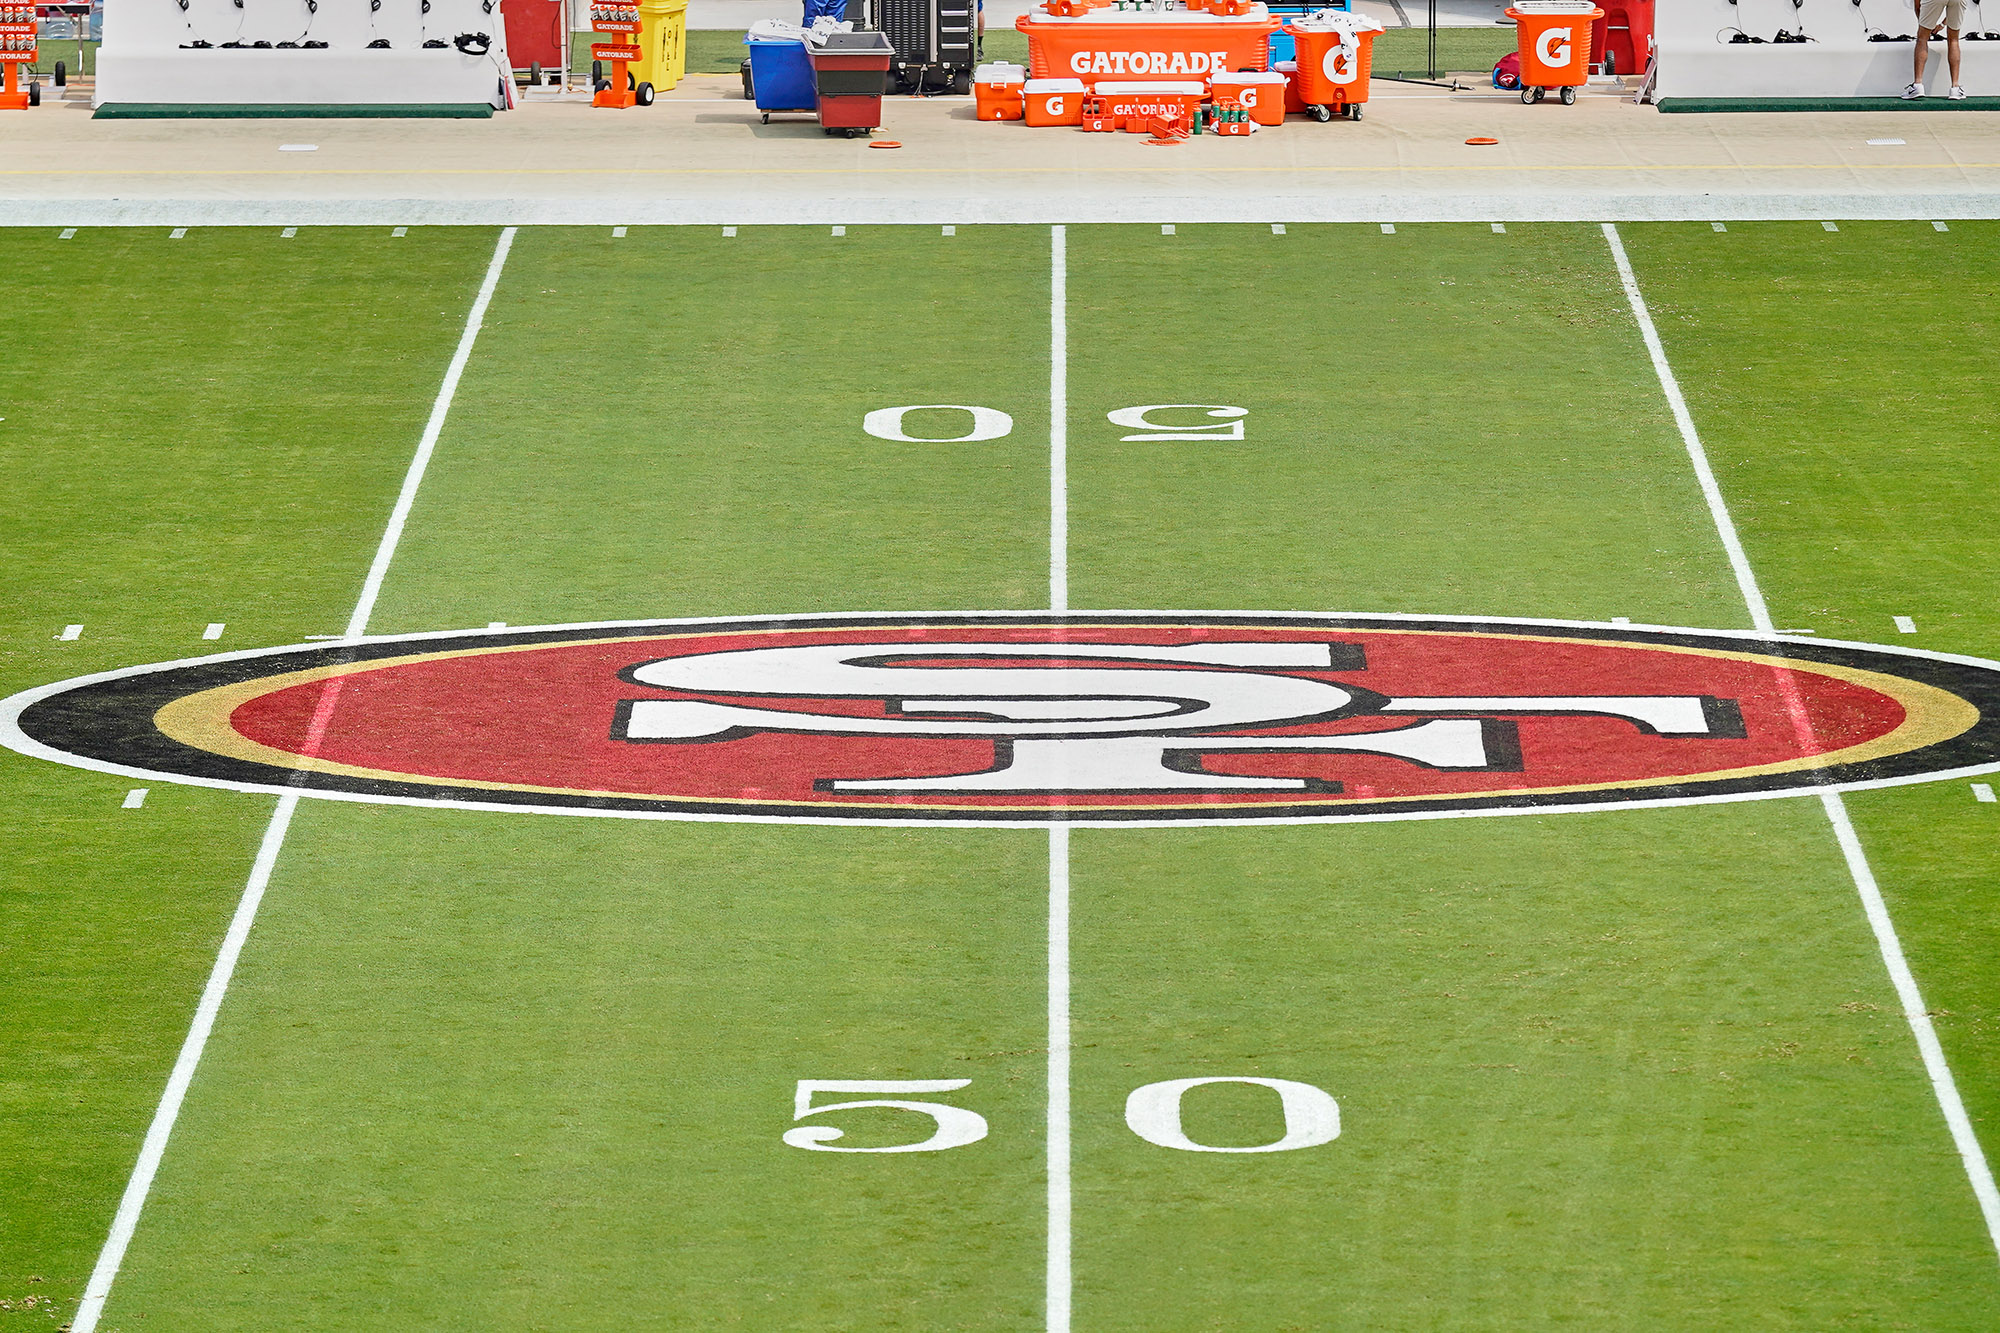 The San Francisco 49ers logo is seen at the 50 yard marker at Levi's Stadium in Santa Clara, California, on September 13.